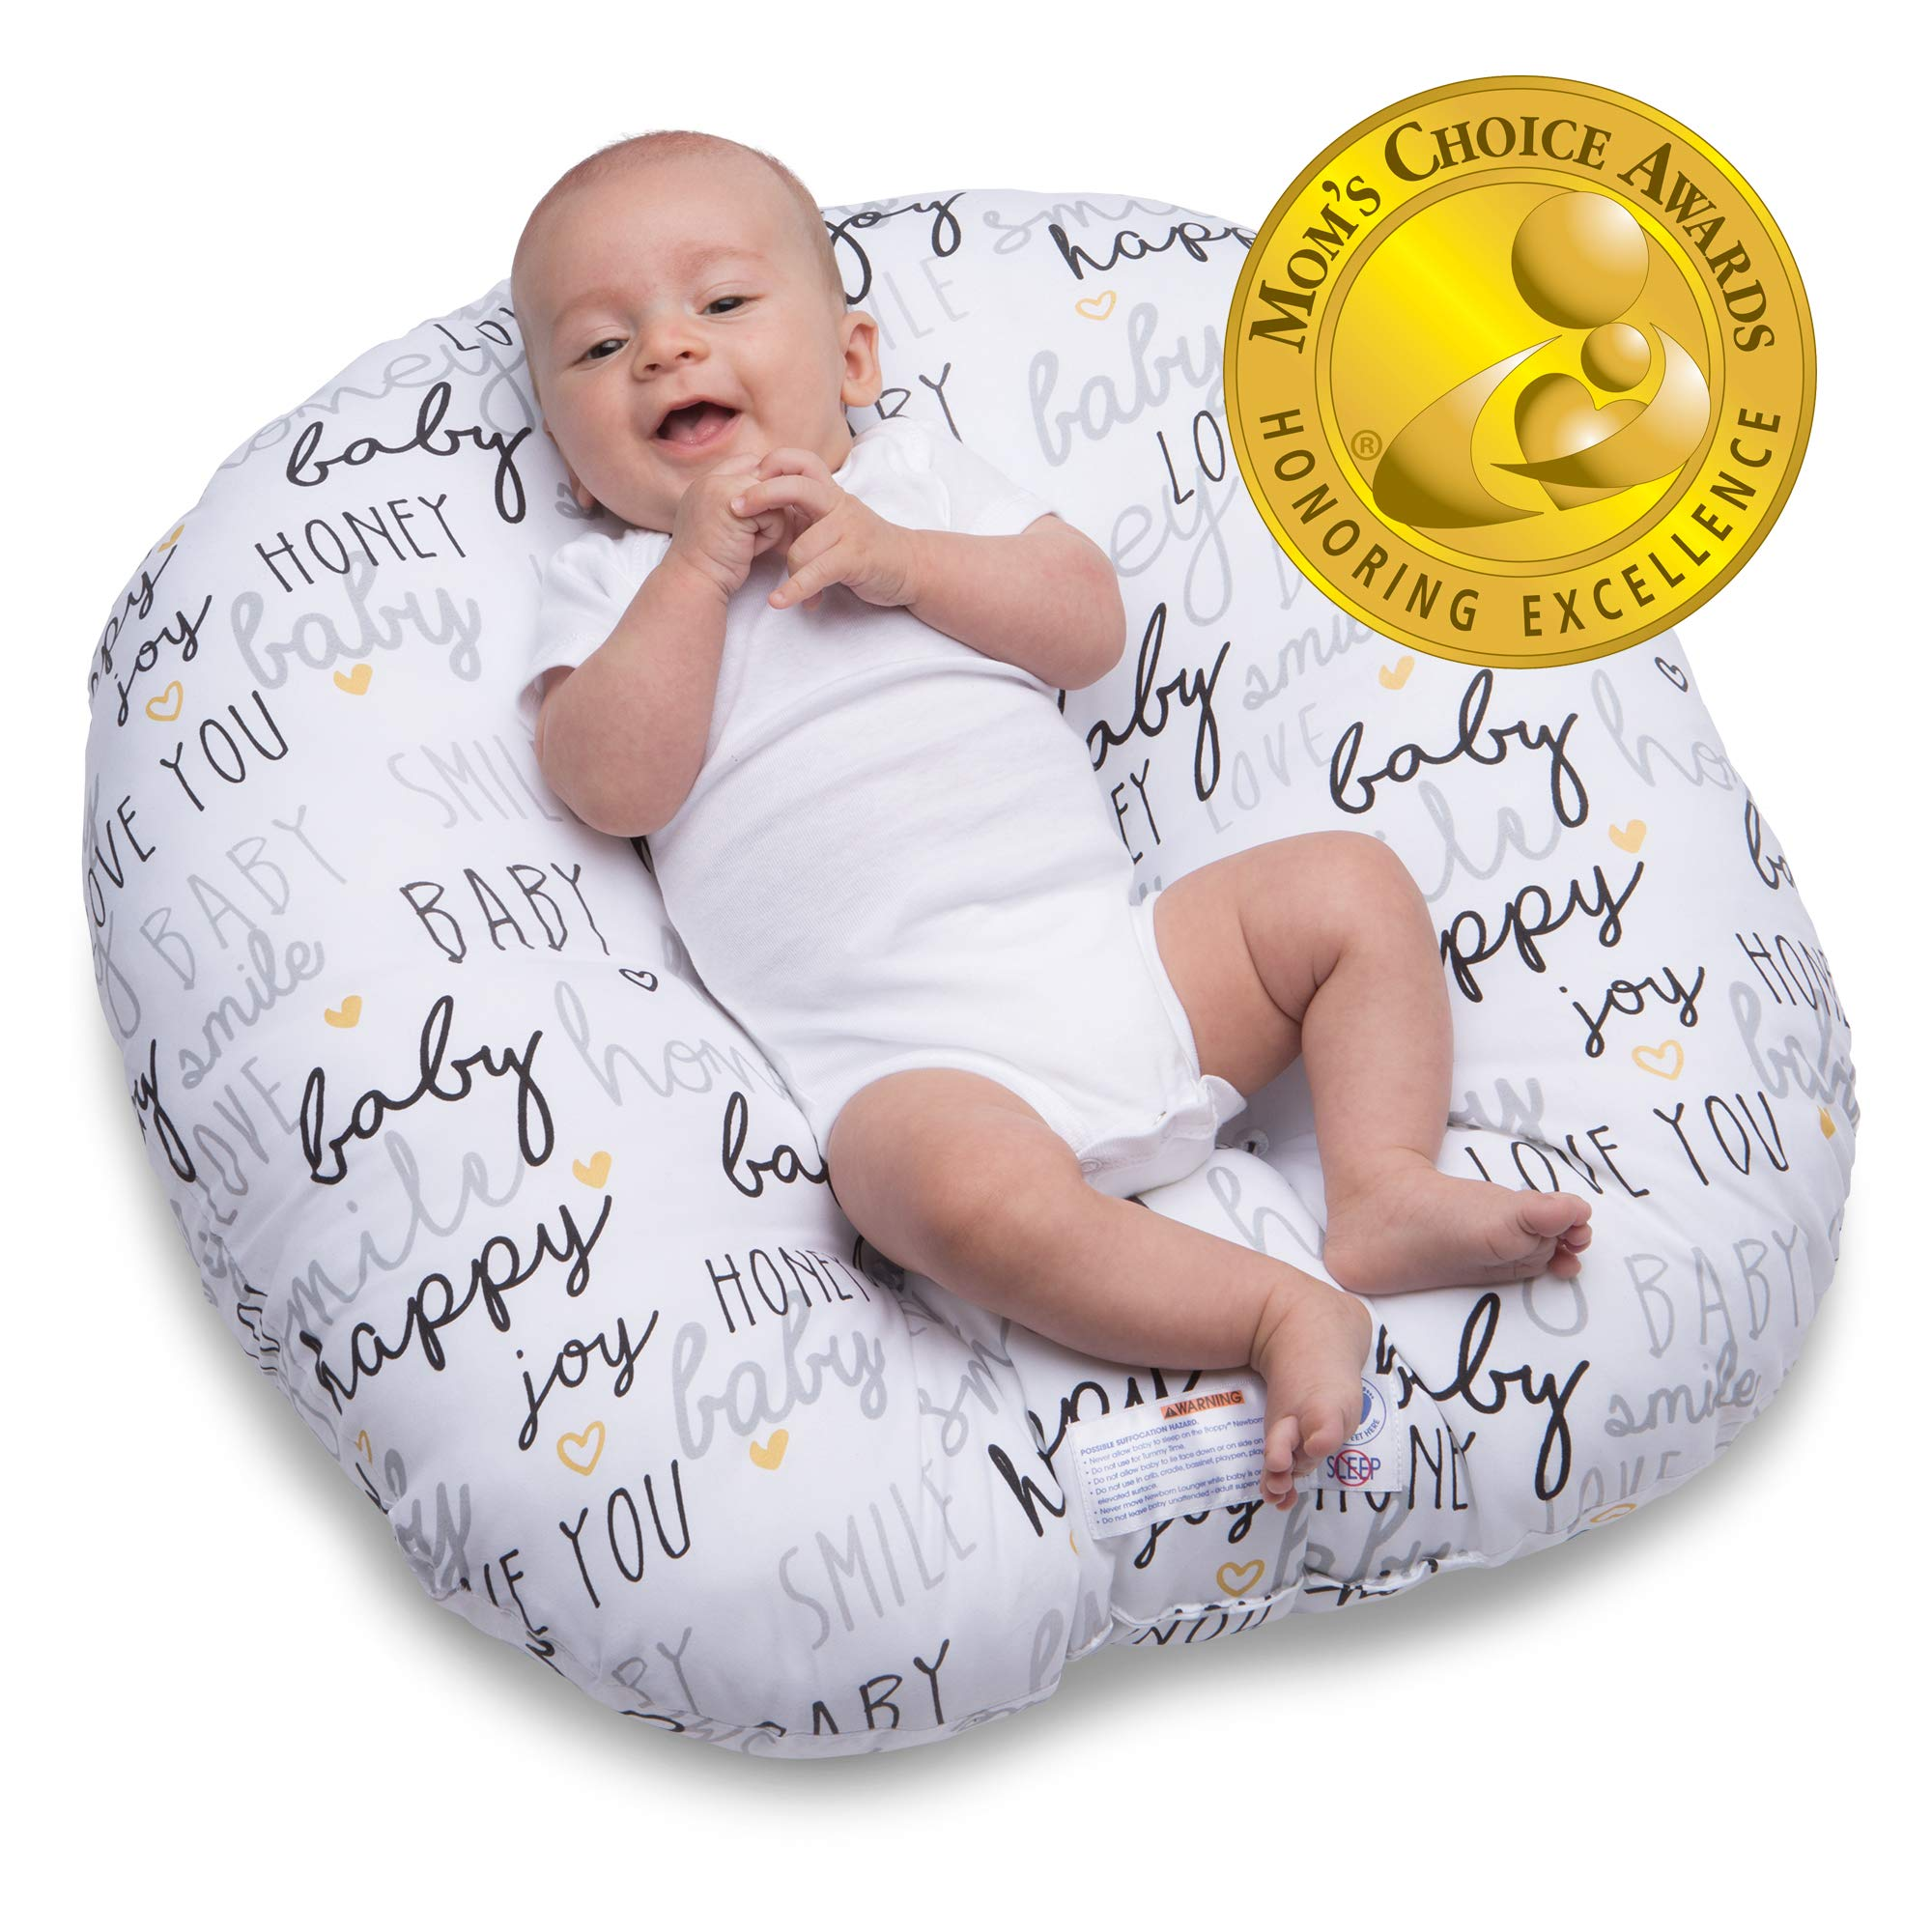 Boppy Original Newborn Lounger, Hello Baby Black and Gold